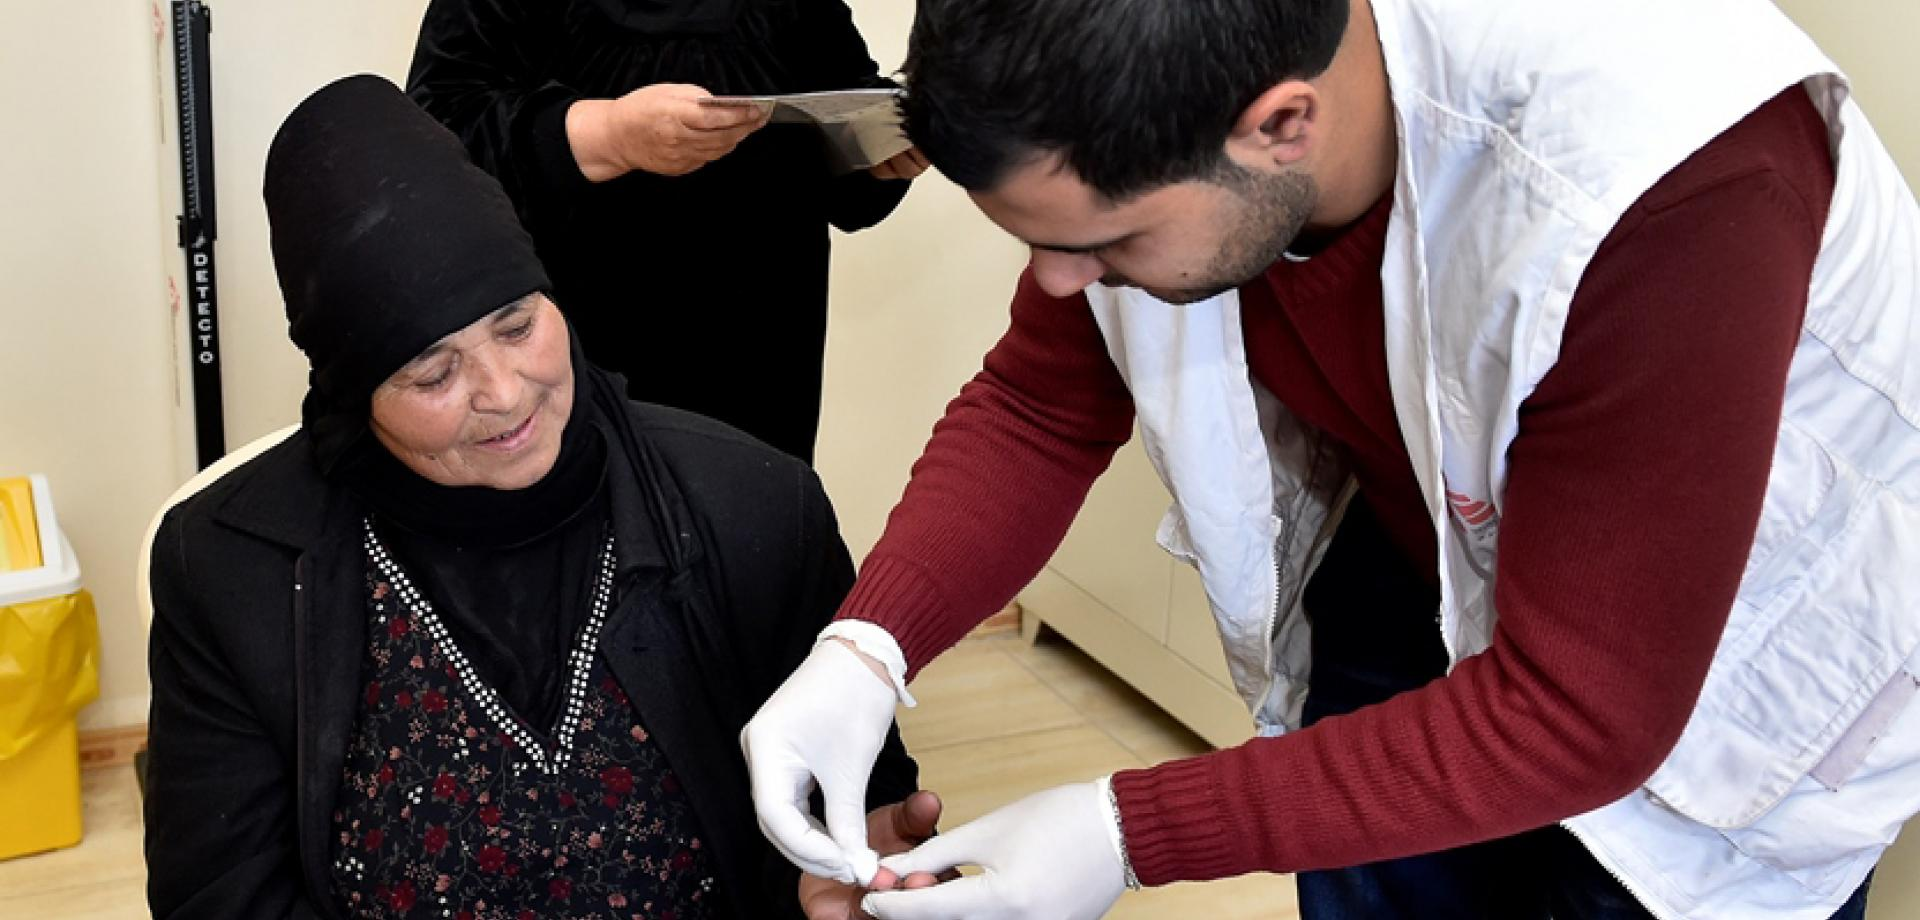 A nurse attends to a patient in Lebanon